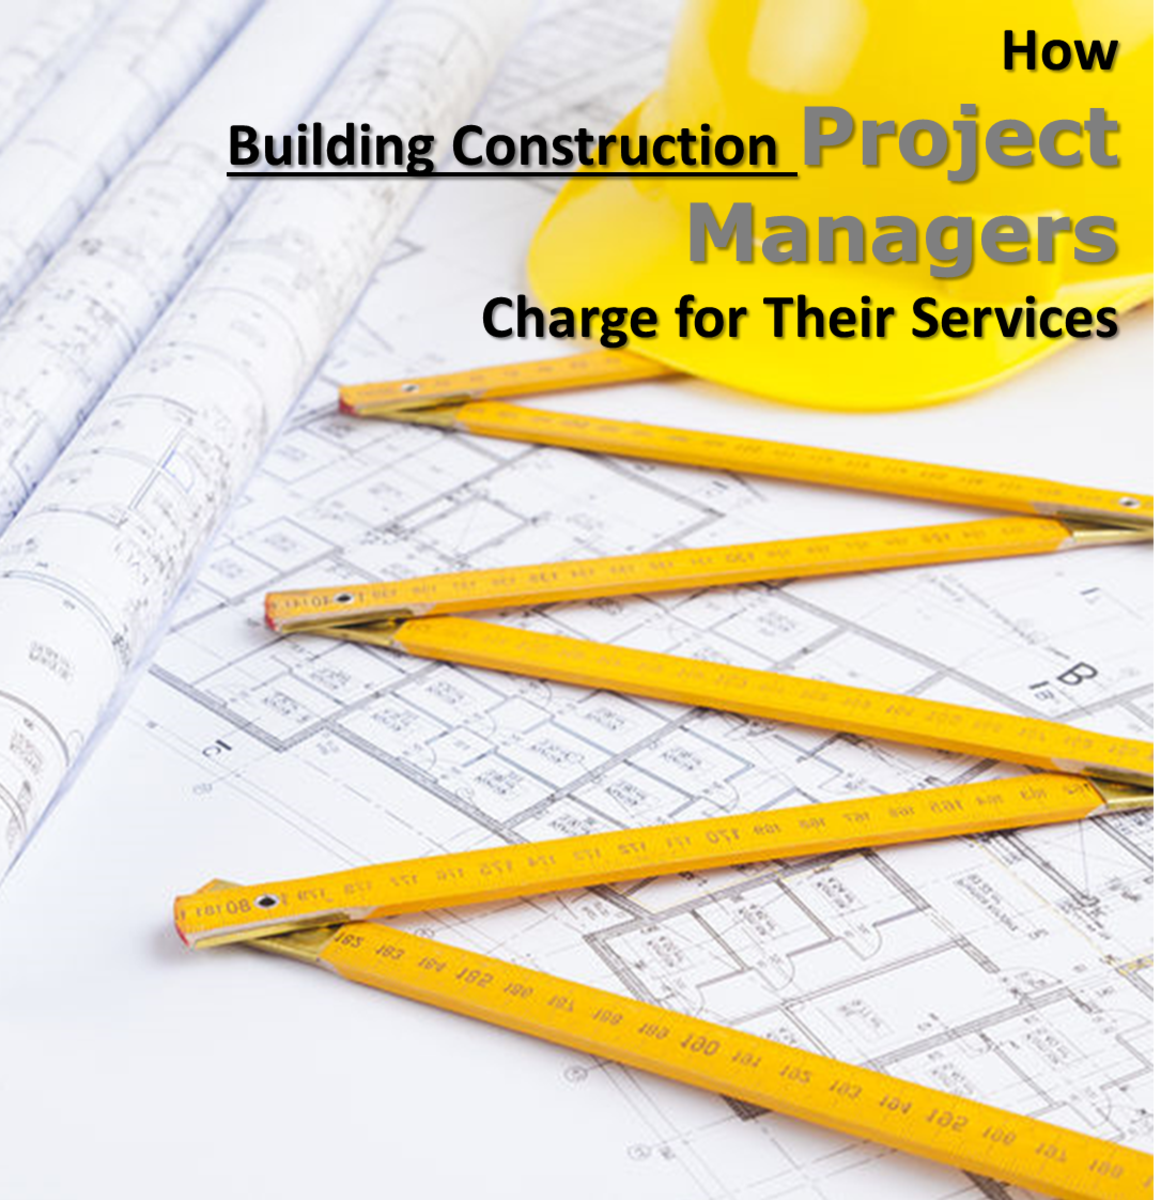 How Building Construction Project Managers Charge for Their Services